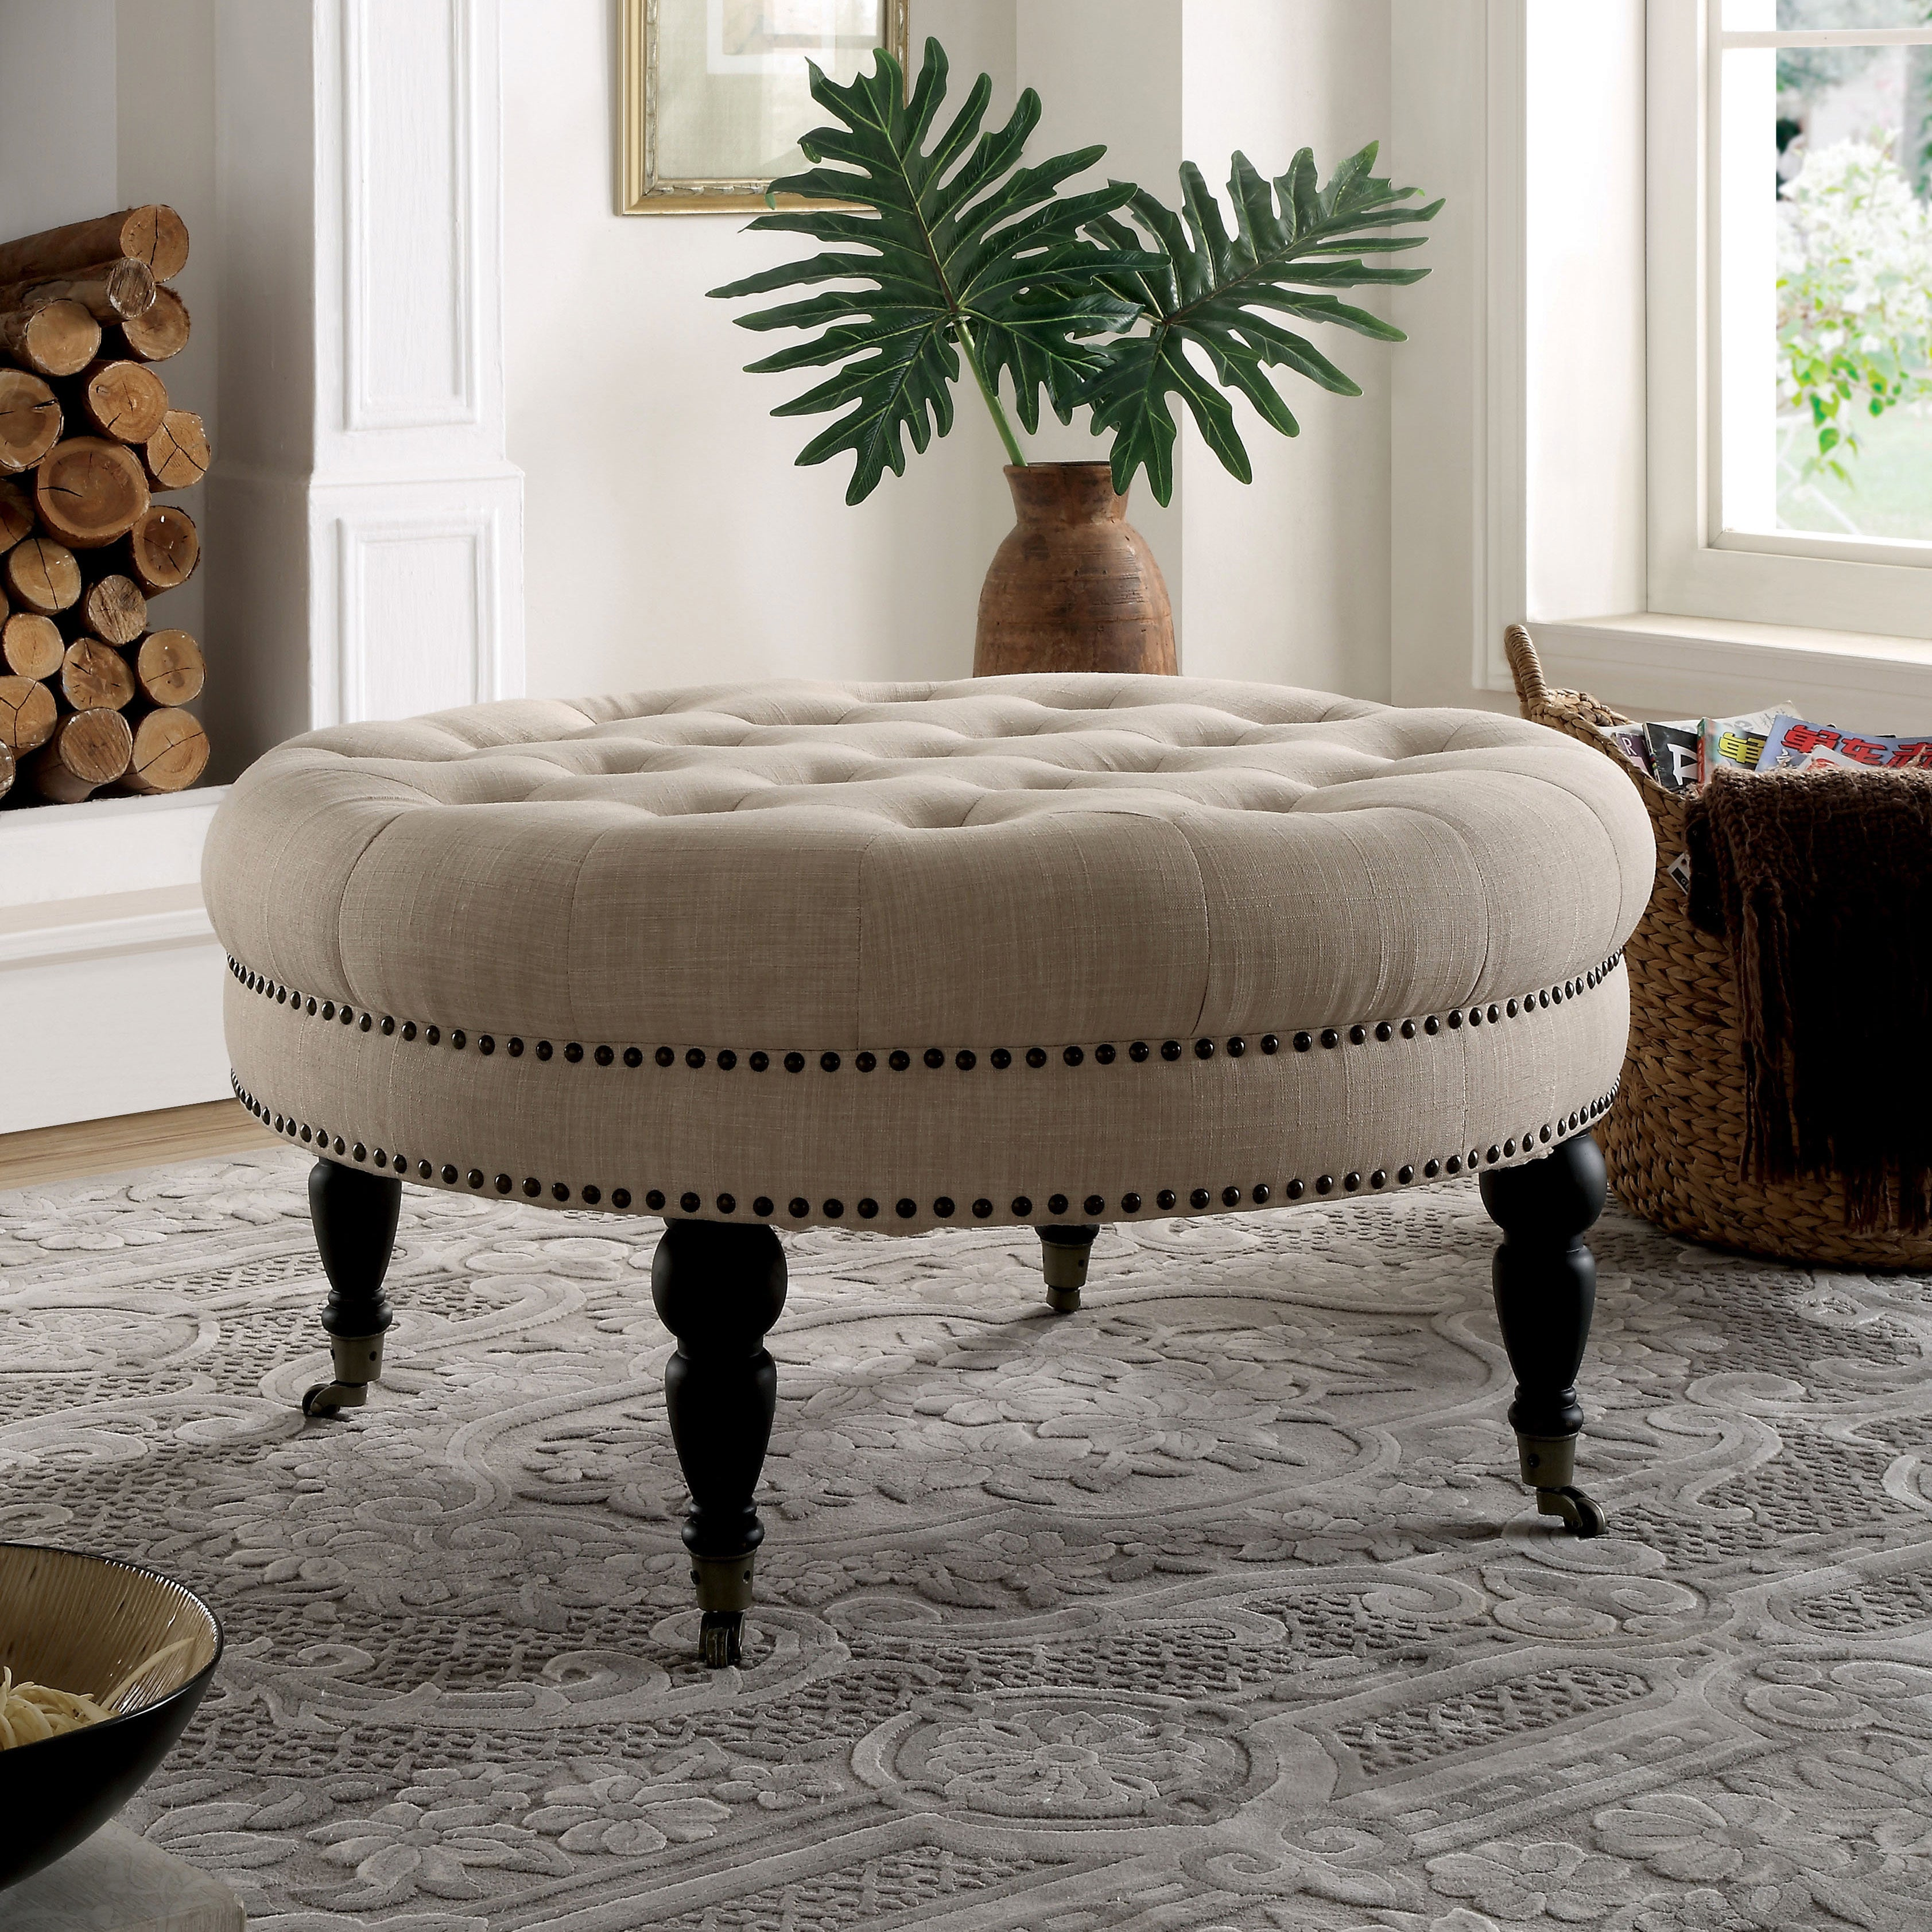 Details about furniture of america basel tufted ivory linen round 35 inch accent ottoman